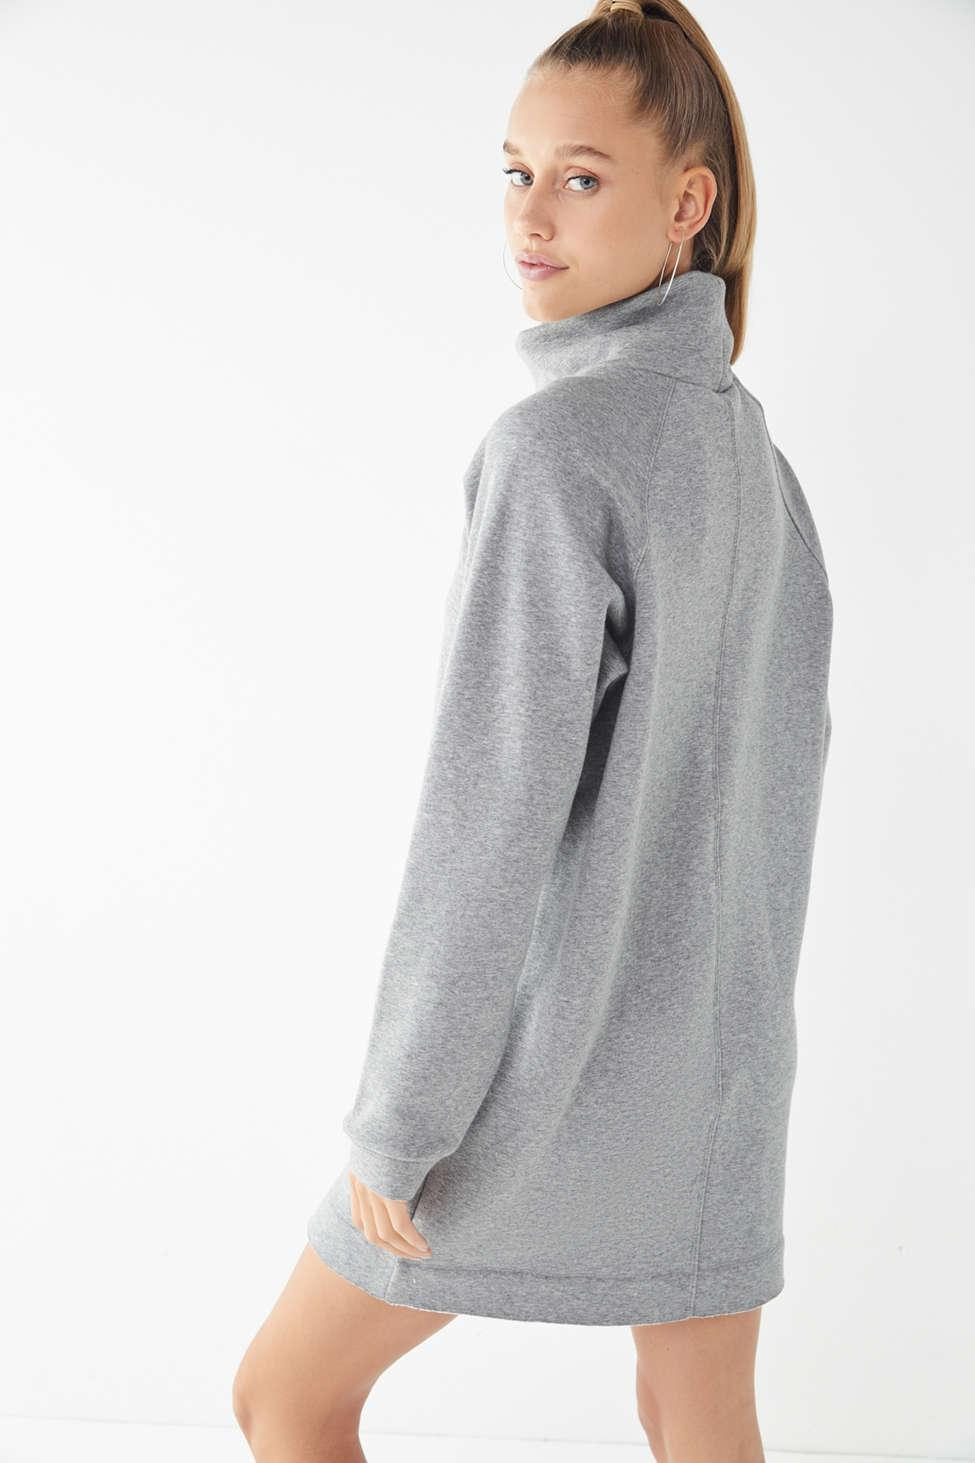 37a1a75352f Lyst - Urban Outfitters Uo Bunny Turtleneck Sweatshirt Dress in Gray